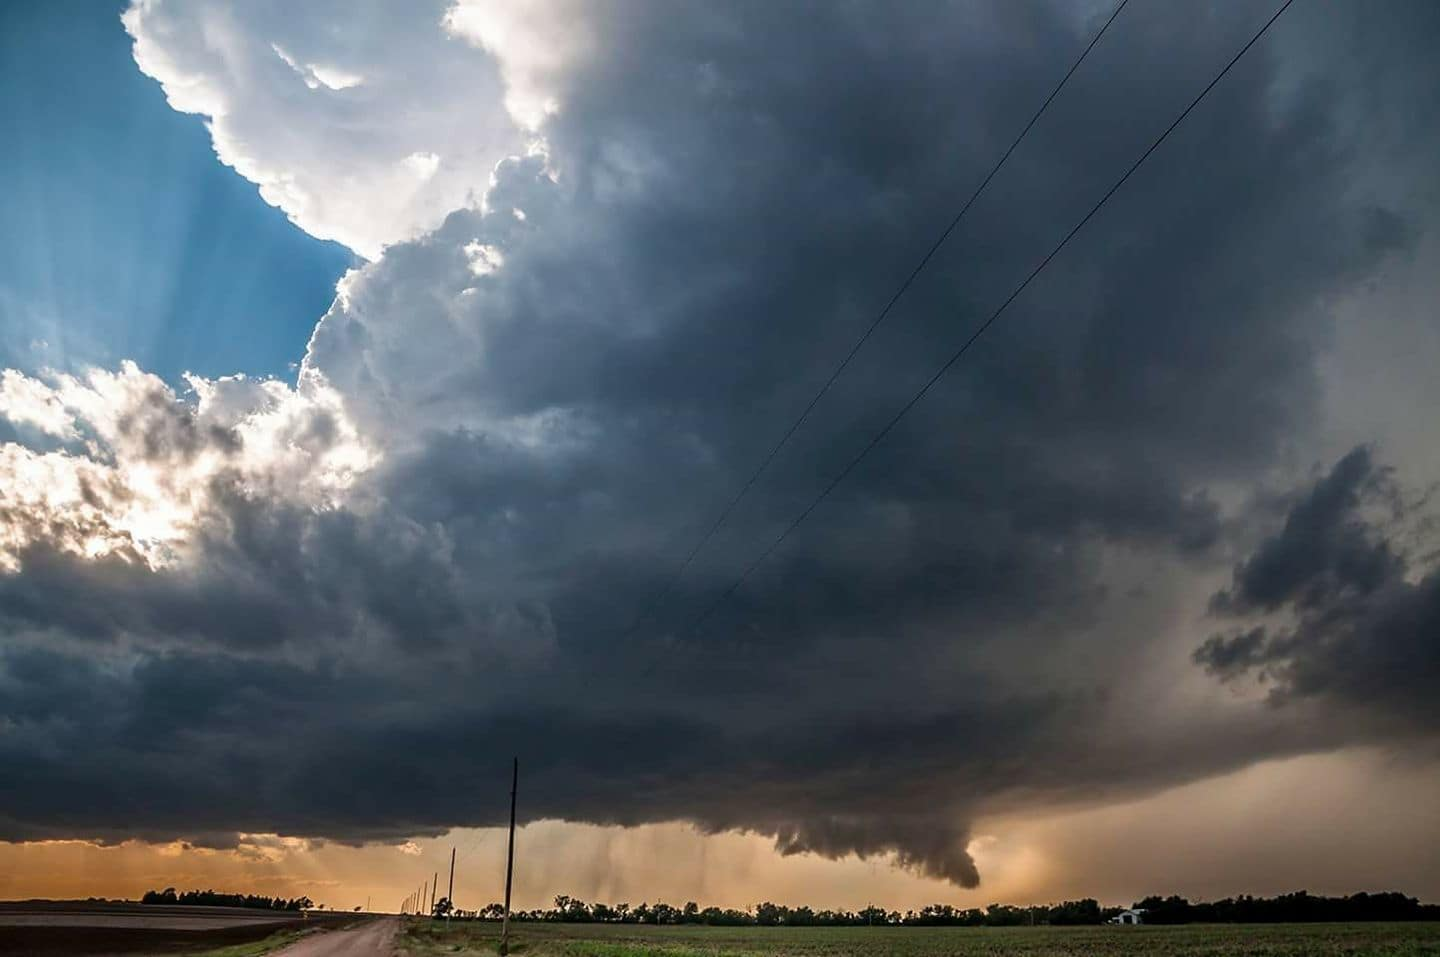 Just need another isolated dry line supercell in my life